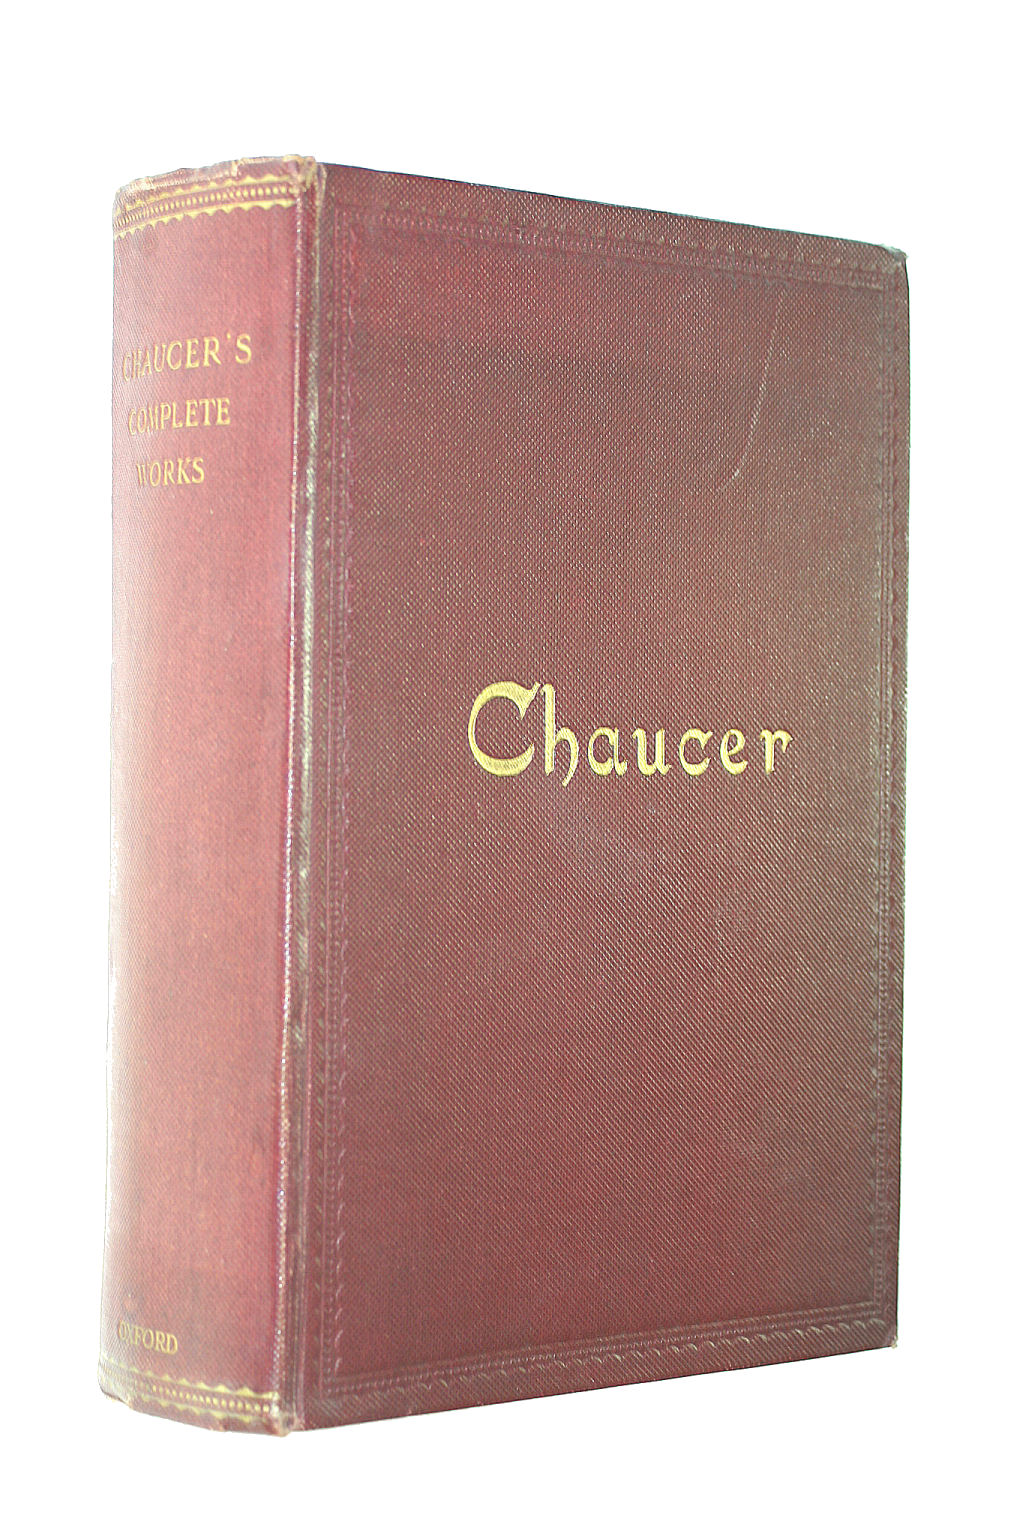 Image for The Complete Works Of Geoffrey Chaucer